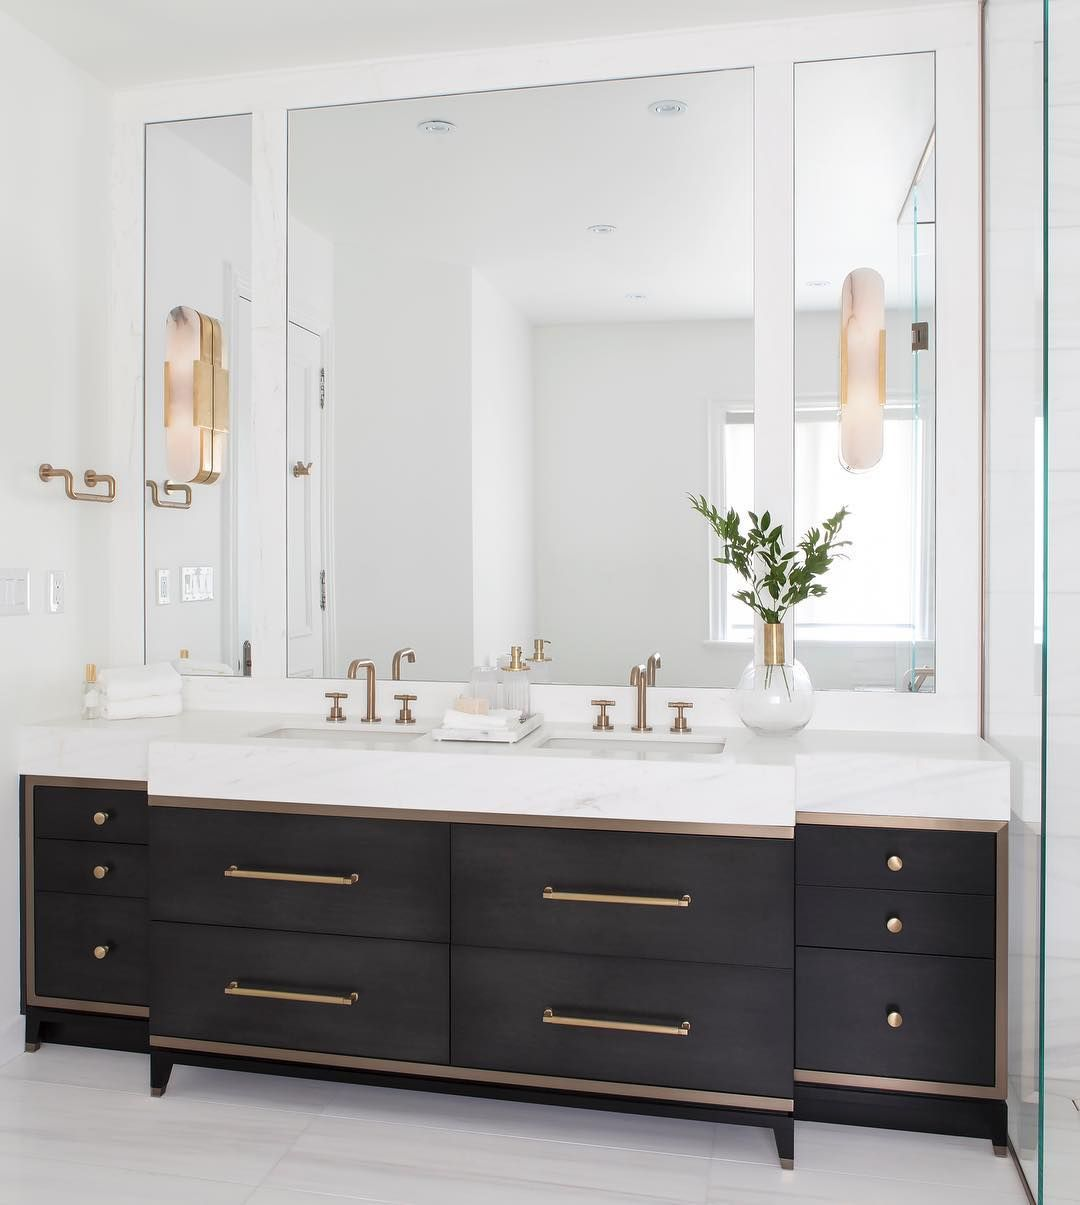 Delia Mamann Interior Design On Instagram Custom Bathroom Vanity